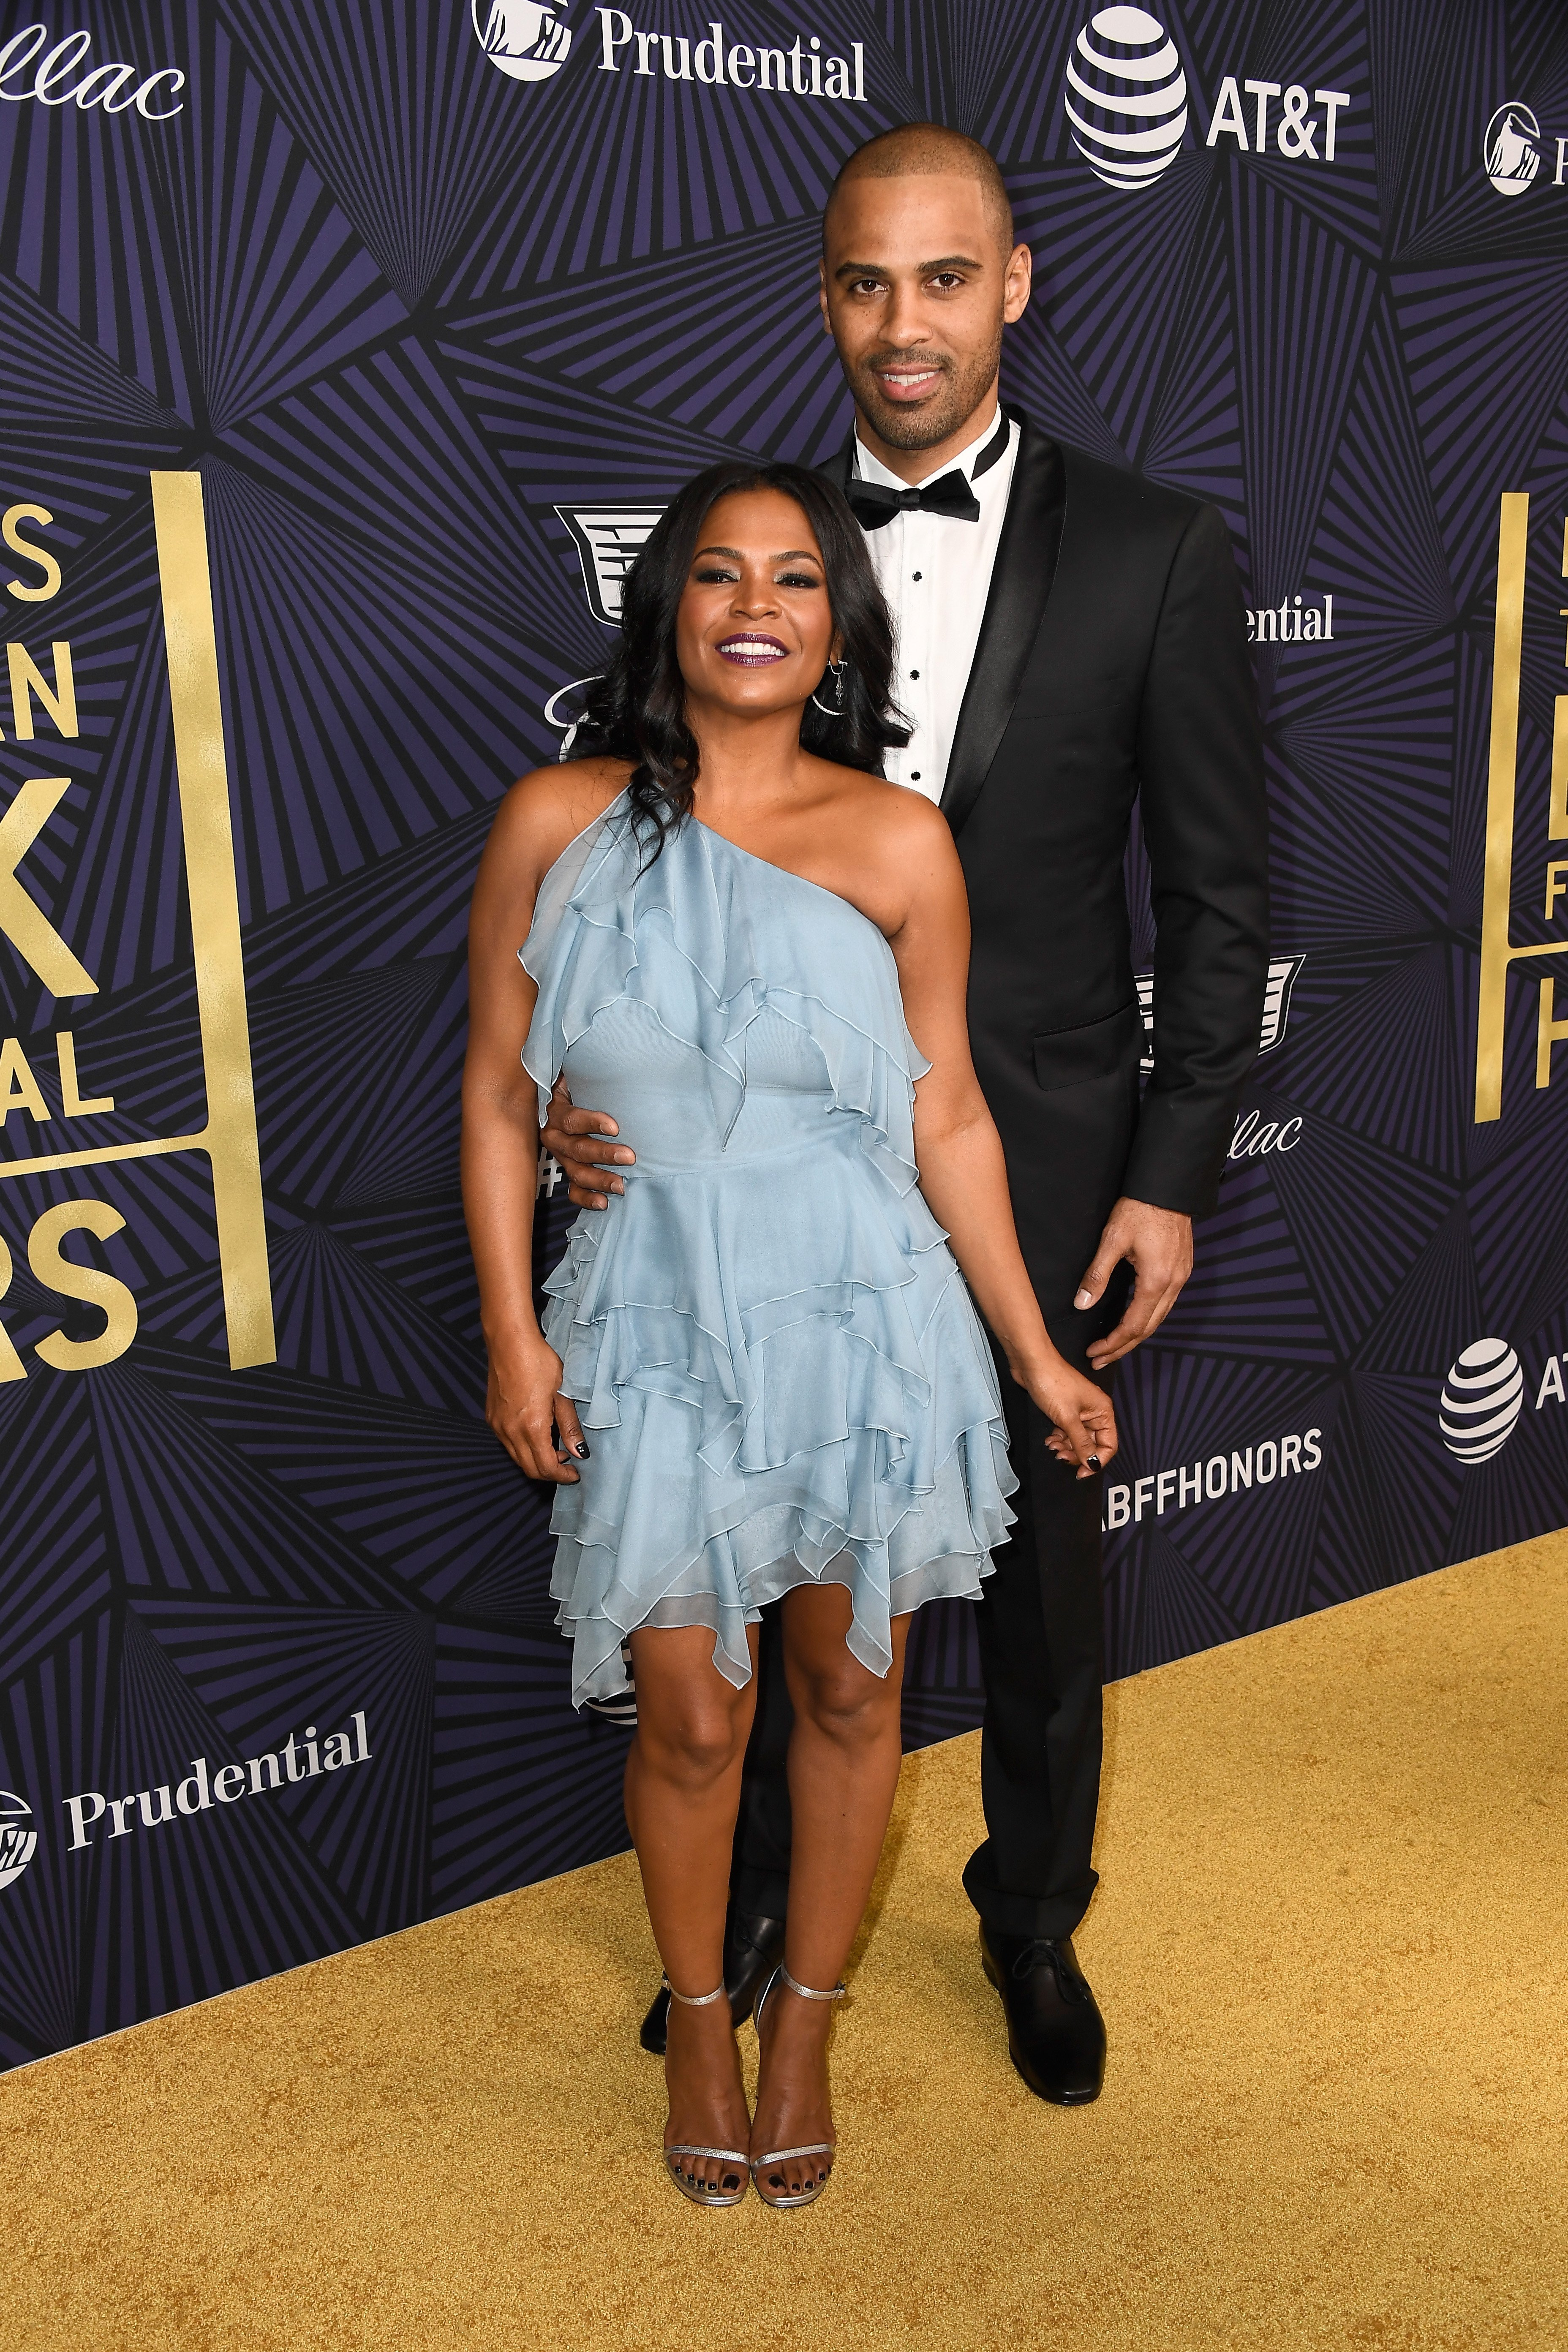 Nia Long & Ime Udoka attend BET Presents the American Black Film Festival Honors on Feb. 17, 2017 in California | Photo: Getty Images